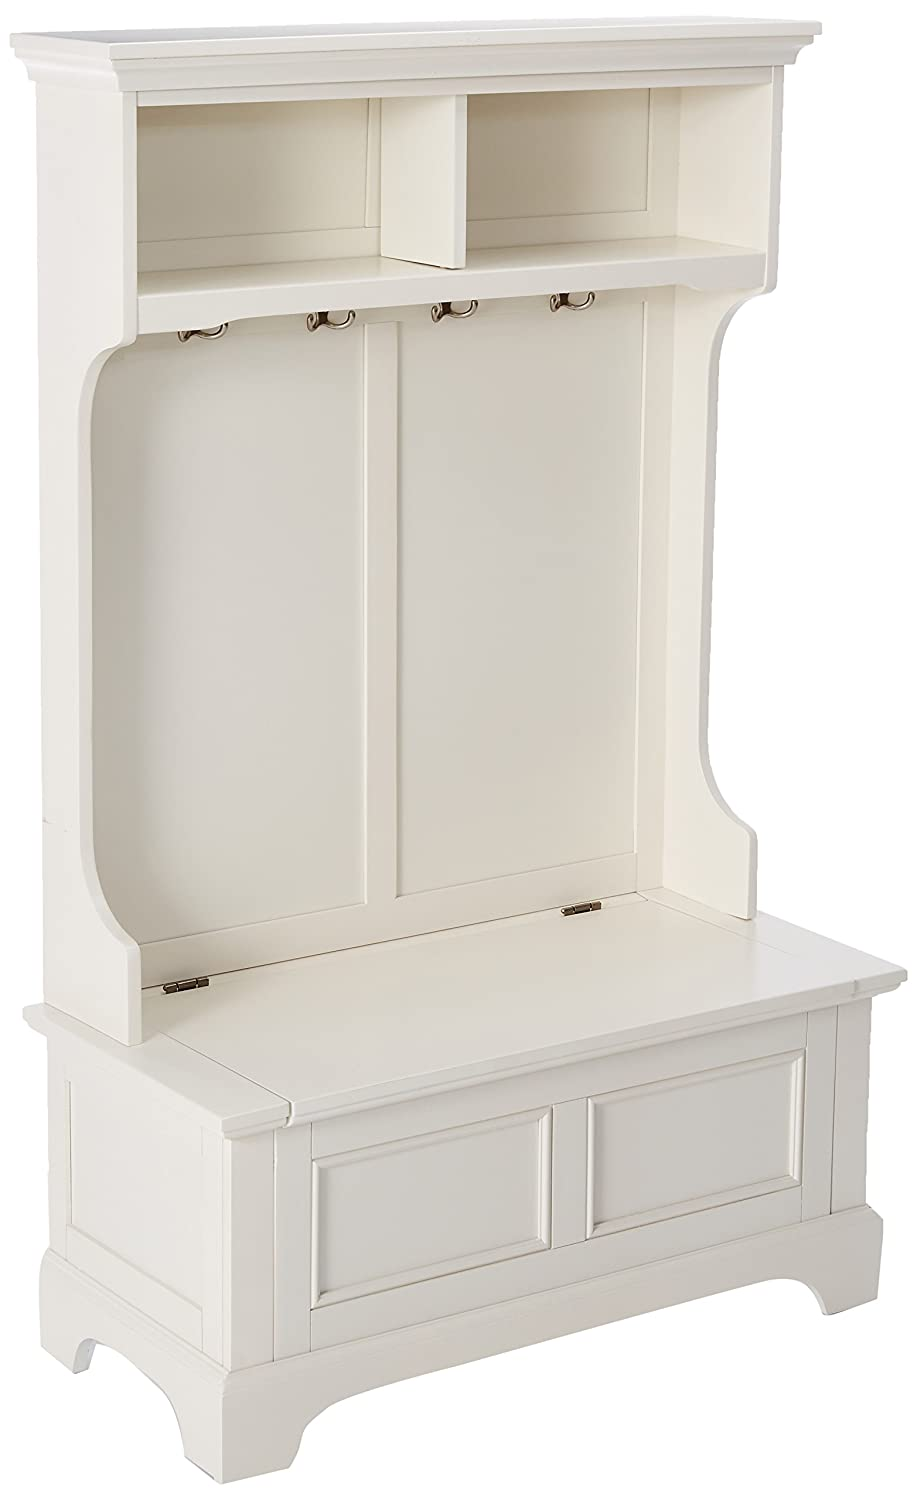 Amazon.com: Home Styles Naples mueble blanco con banco de ...